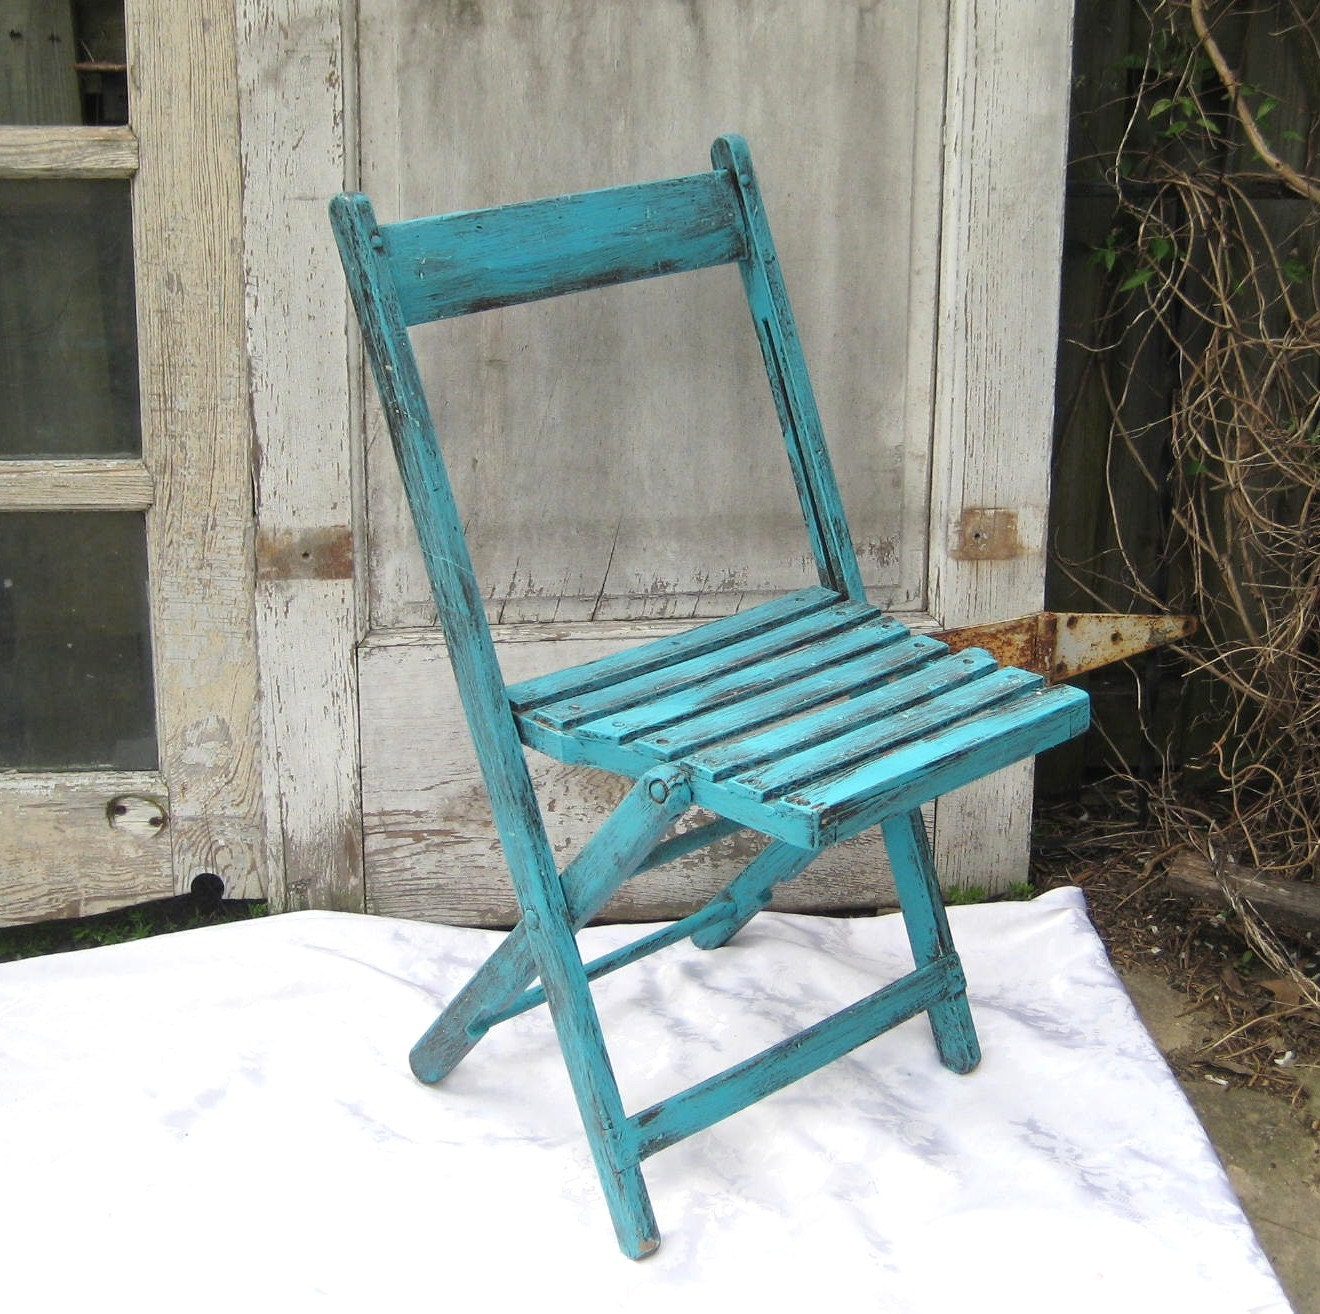 Vintage folding chair upcycled aqua garden chair rustic wood for Fold up garden chairs